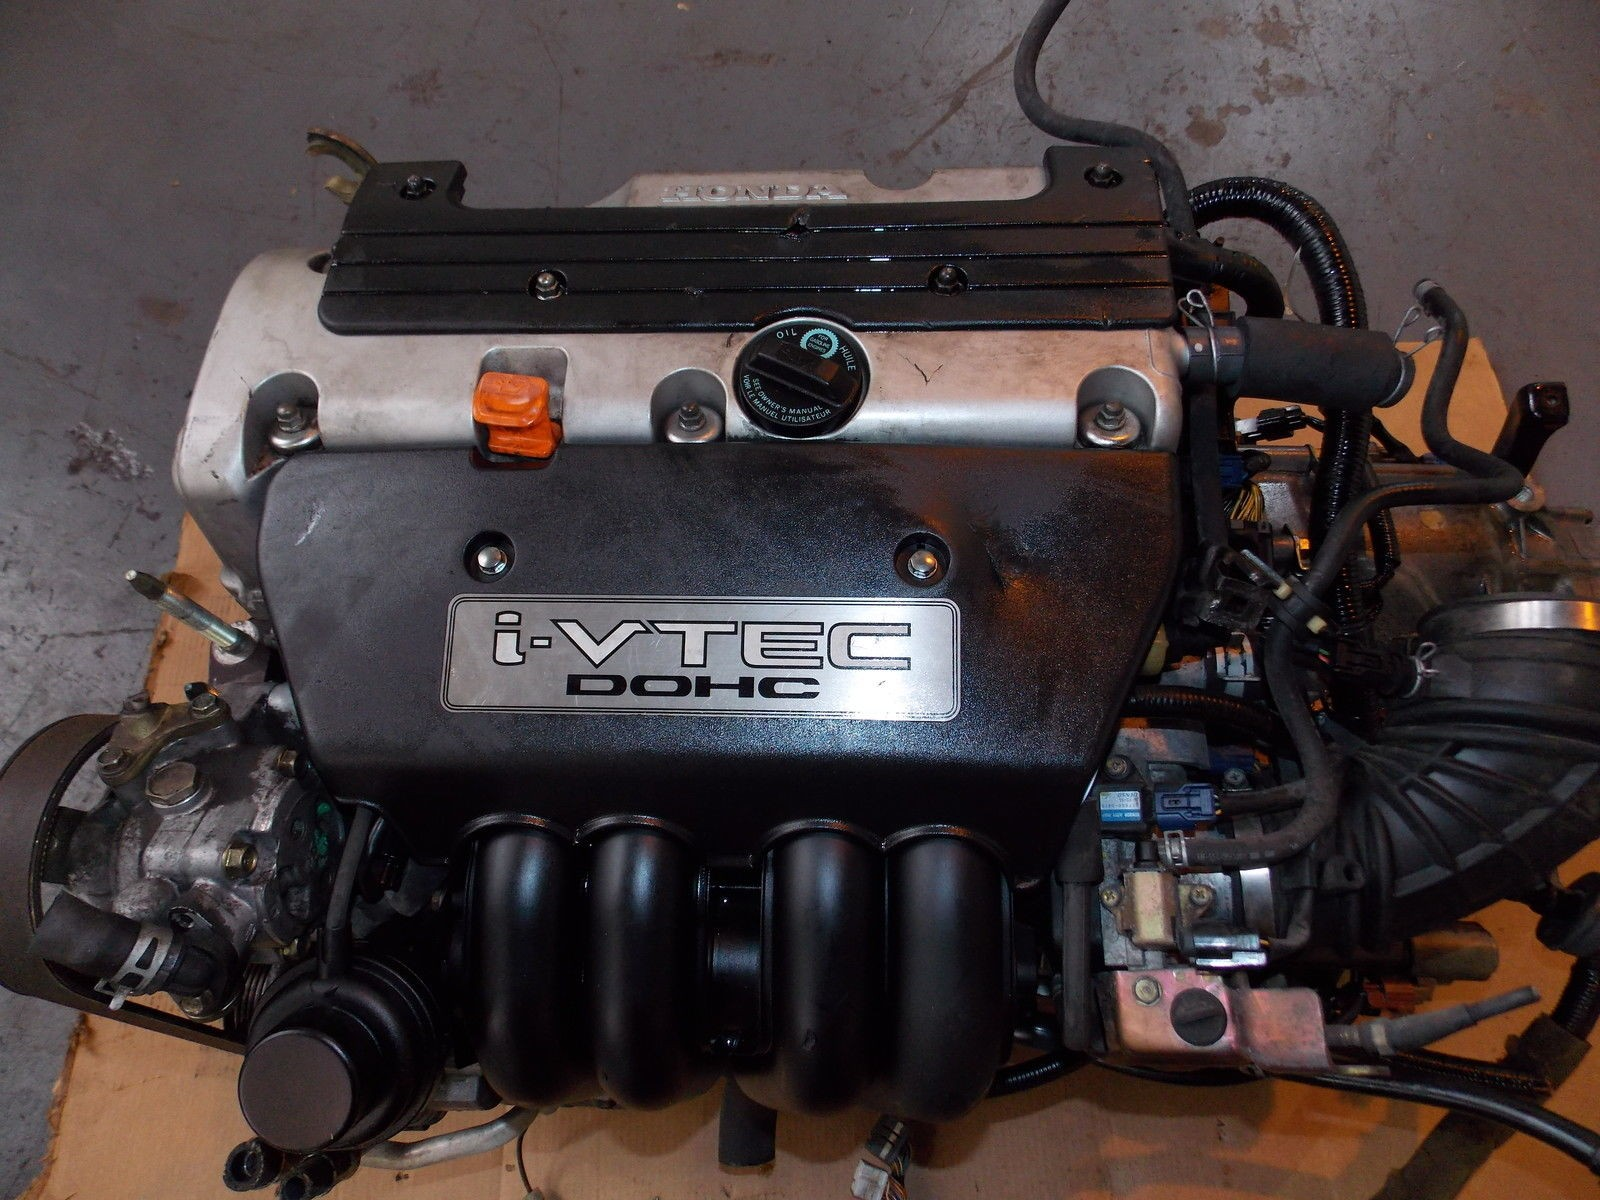 1990 Honda Civic Engine Diagram Cr V Fuse Box Besides Hatchback K20 Swap To A 95 Hatch Tech Forum